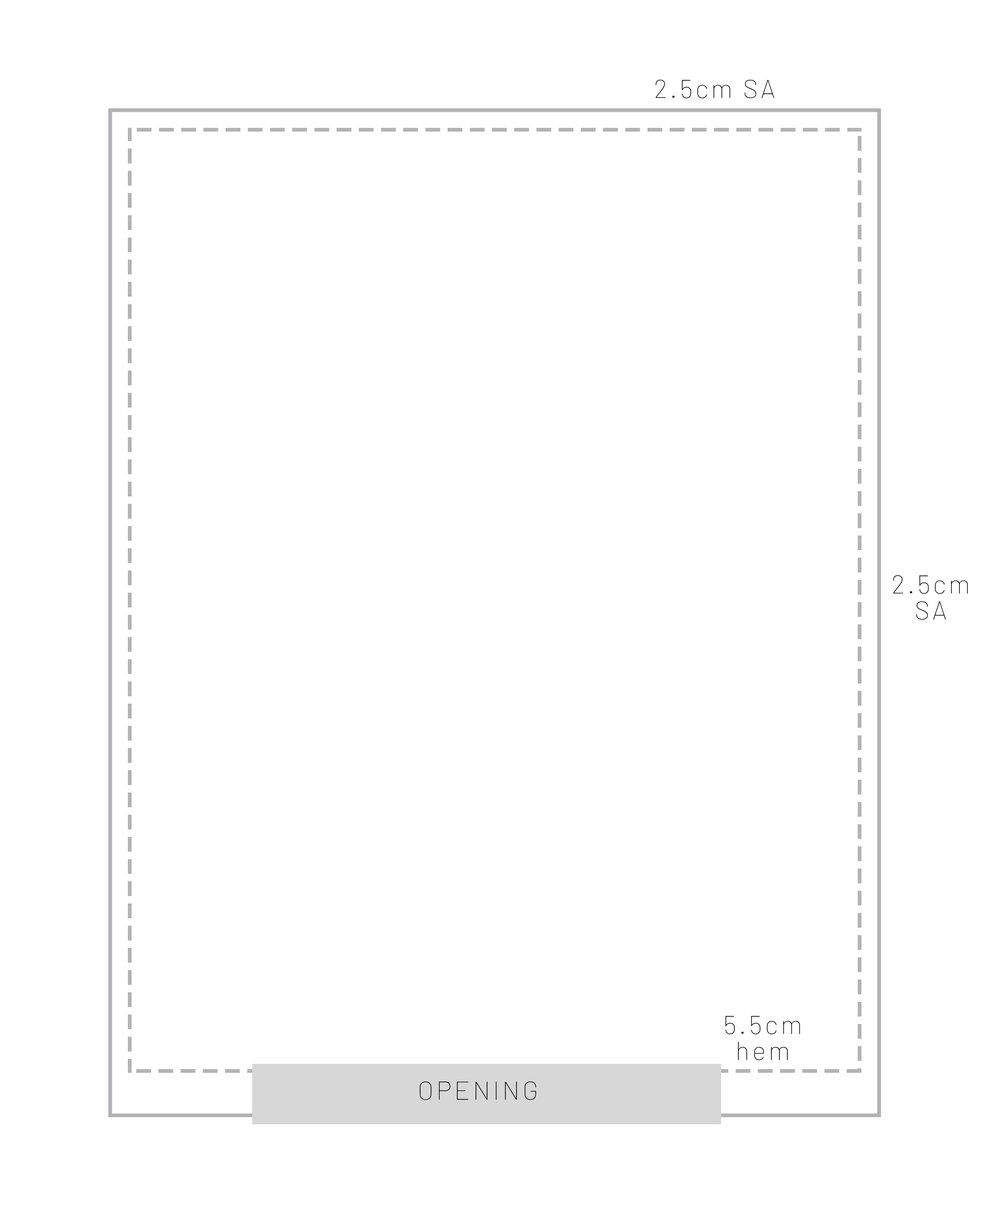 Doona cover - This is a basic diagram on how to cut out a doona/quilt cover using the guide above for meterage. The link below I found very helpful when making my fitted sheetshttp://www.designsponge.com/2010/03/sewing-101-making-a-duvet-cover.html